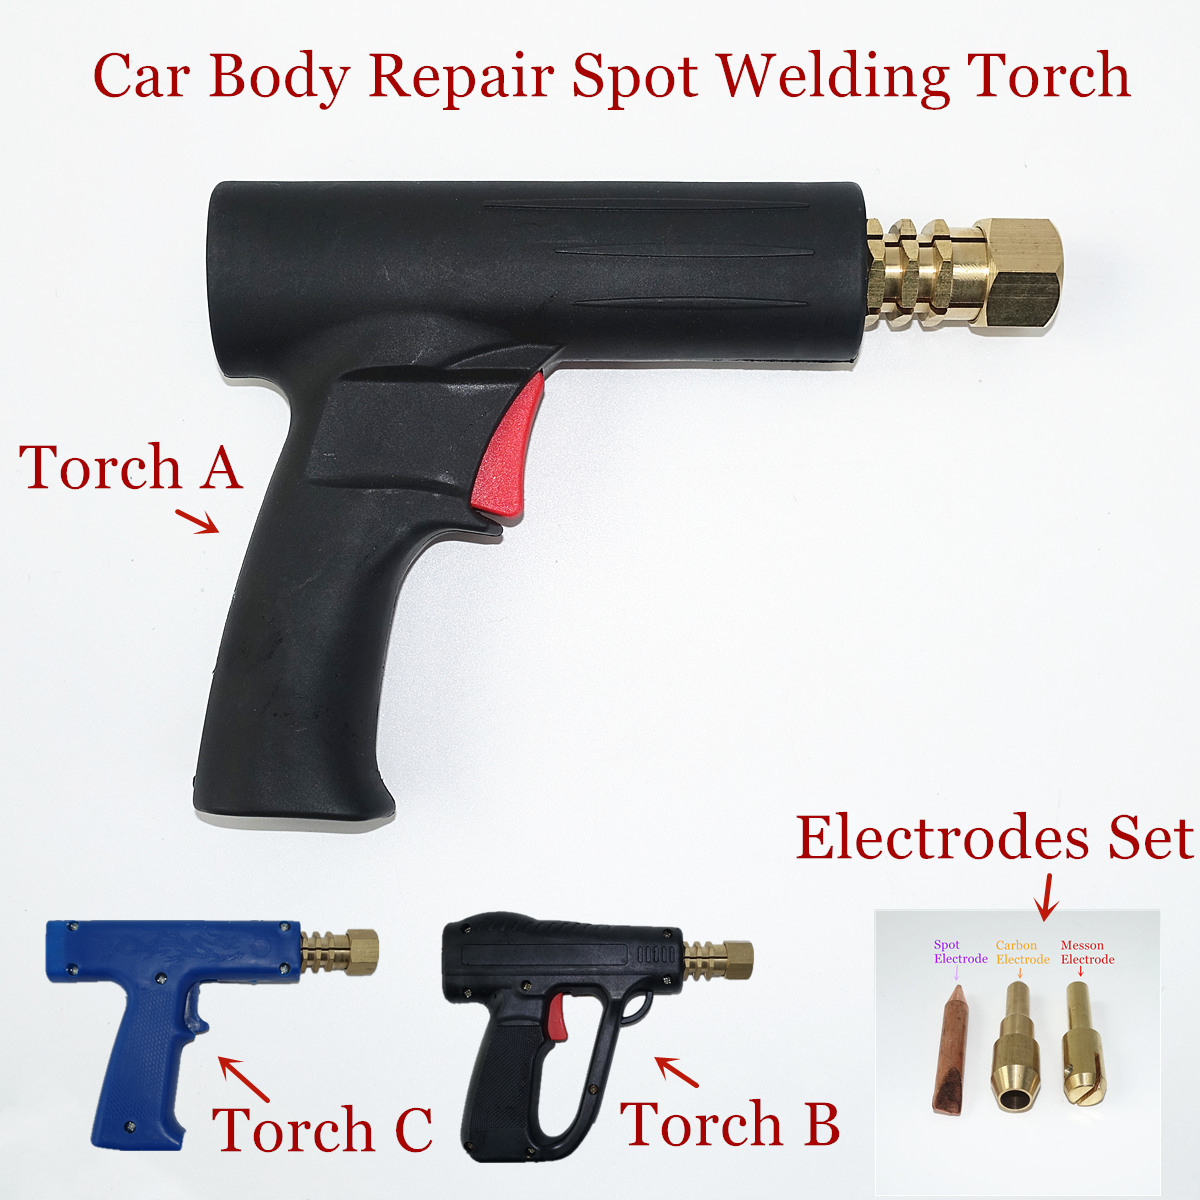 Car Body Repair Gun Dent Pulling Torch Washer Wavy Wire Carbon Garage Sheet Metal Repair Spot Welding Torch